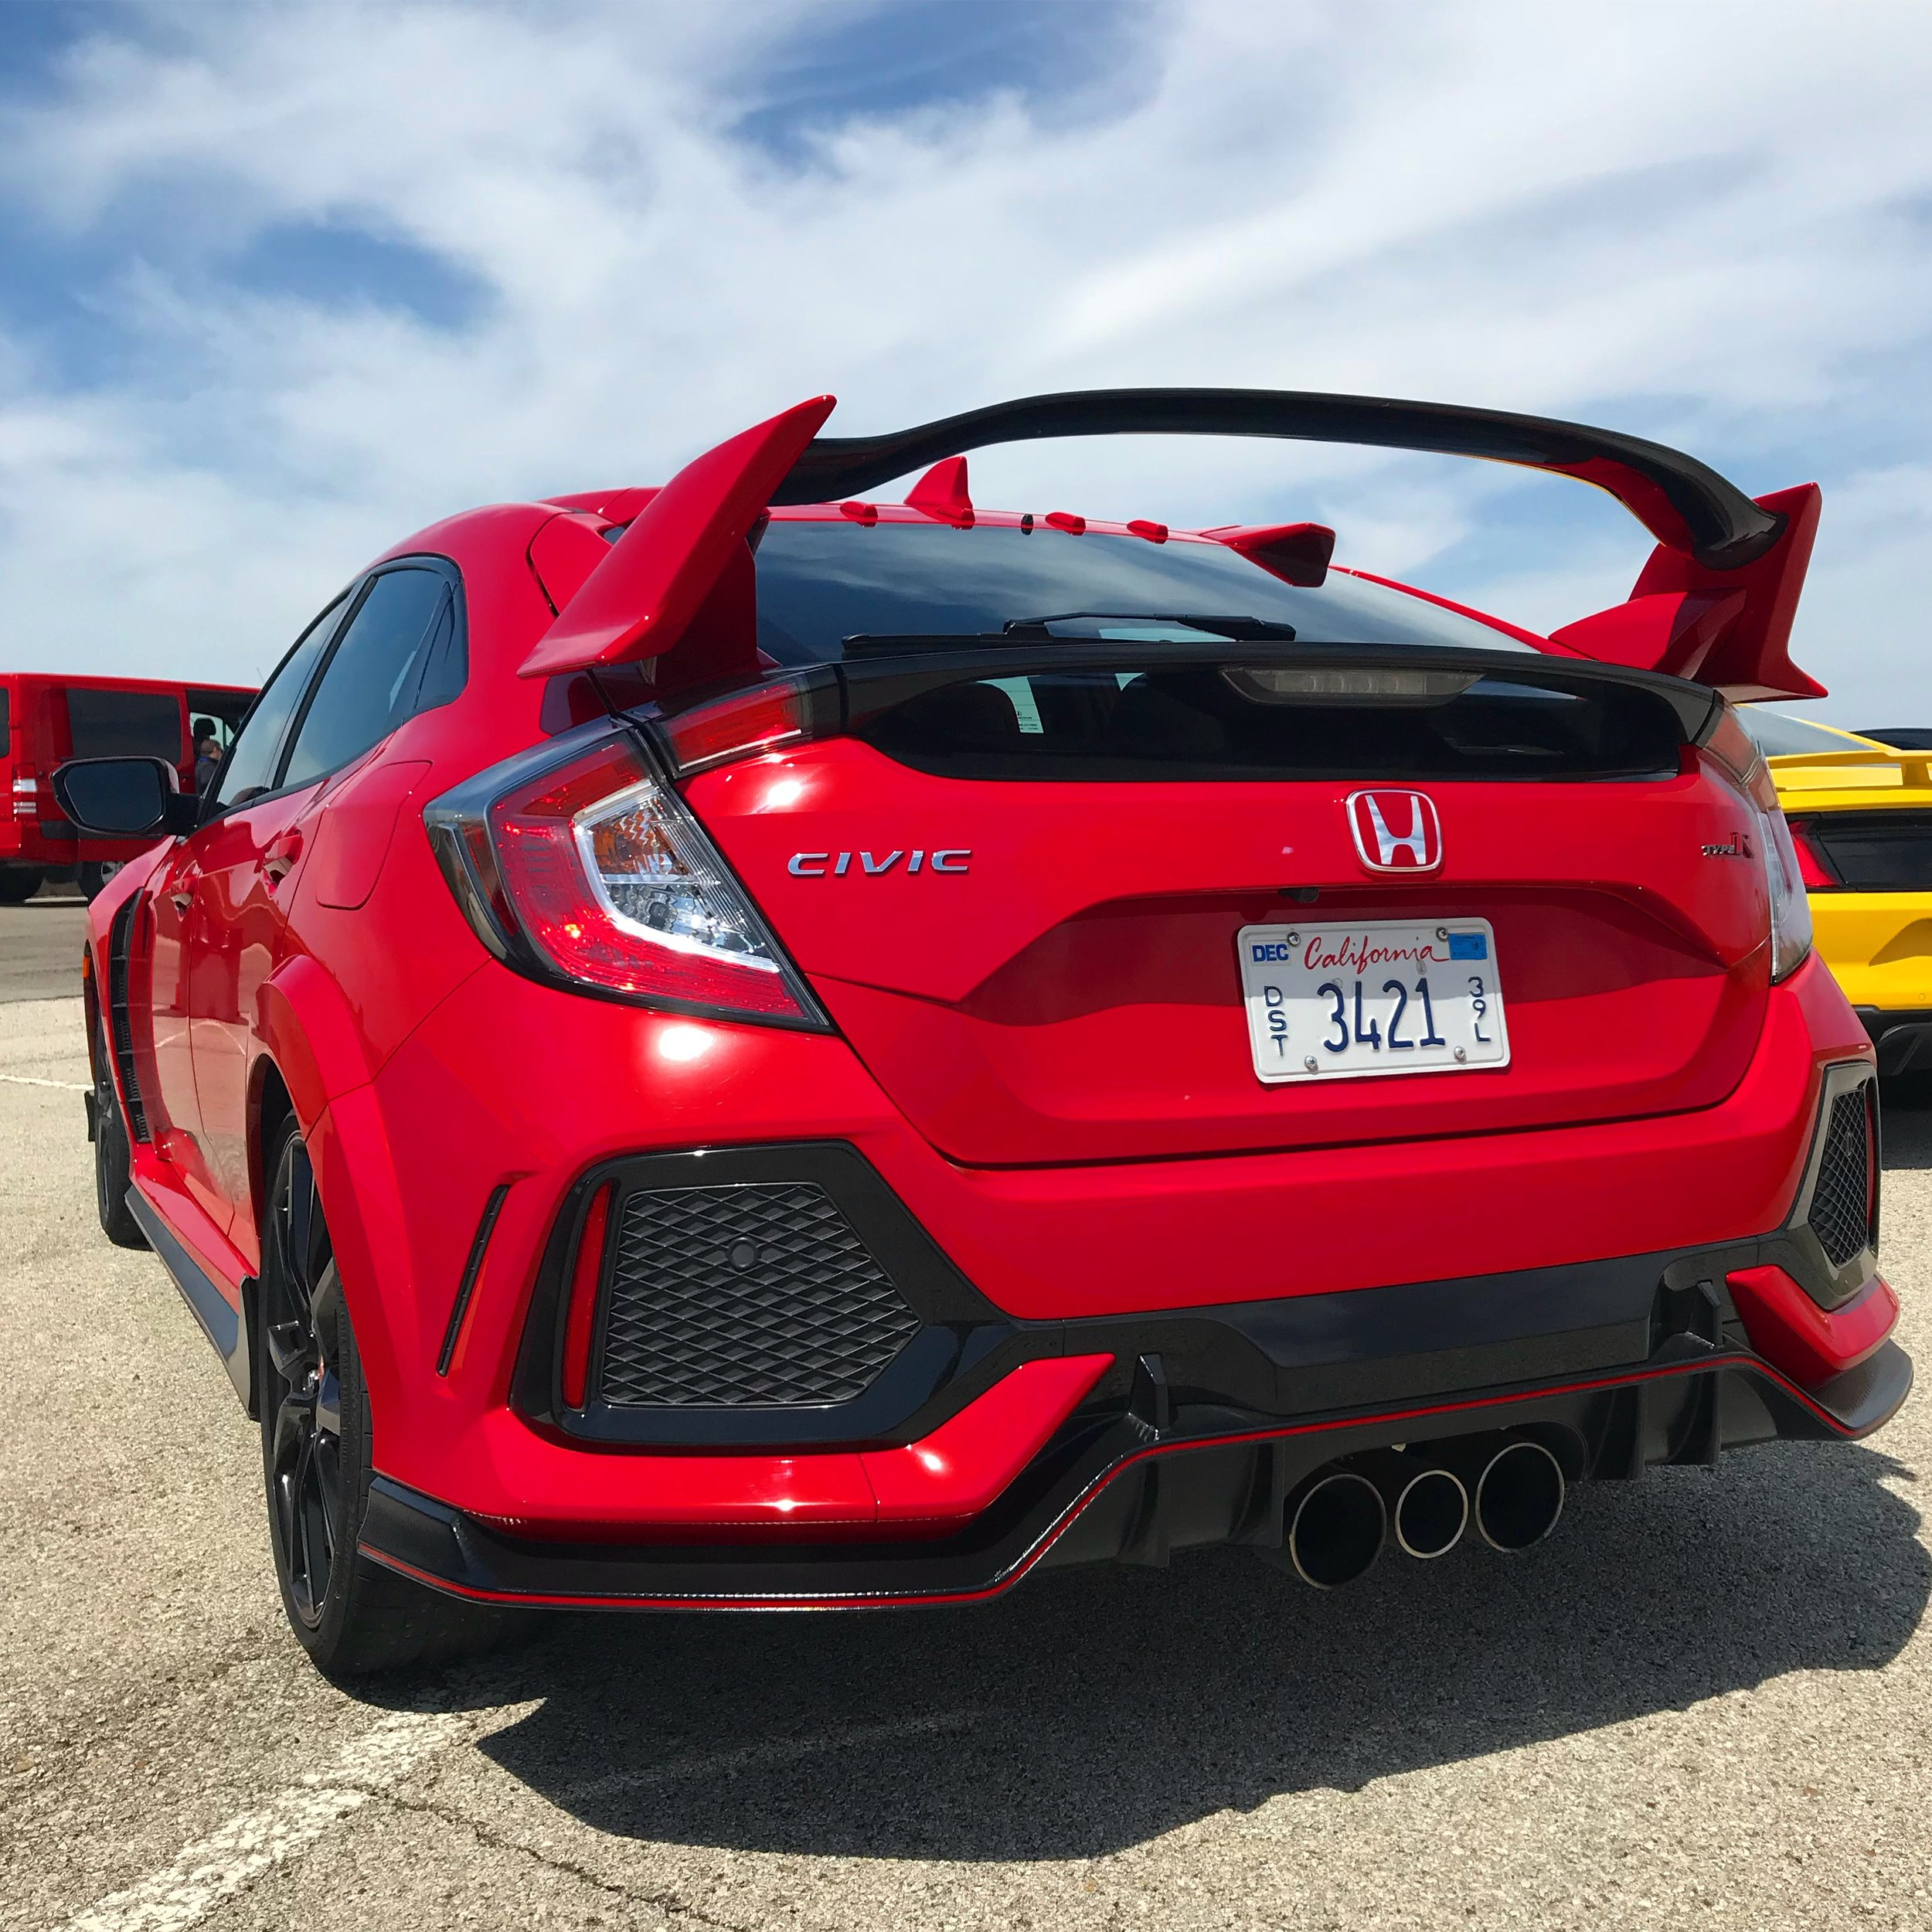 I was a little nervous to drive the Honda Civic Type R (which is available with manual transmission only), but after Honda representative Davis took us for a spin around the track, I felt emboldened to try it. It was astonishingly smooth and easy to drive, and exceedingly fun!